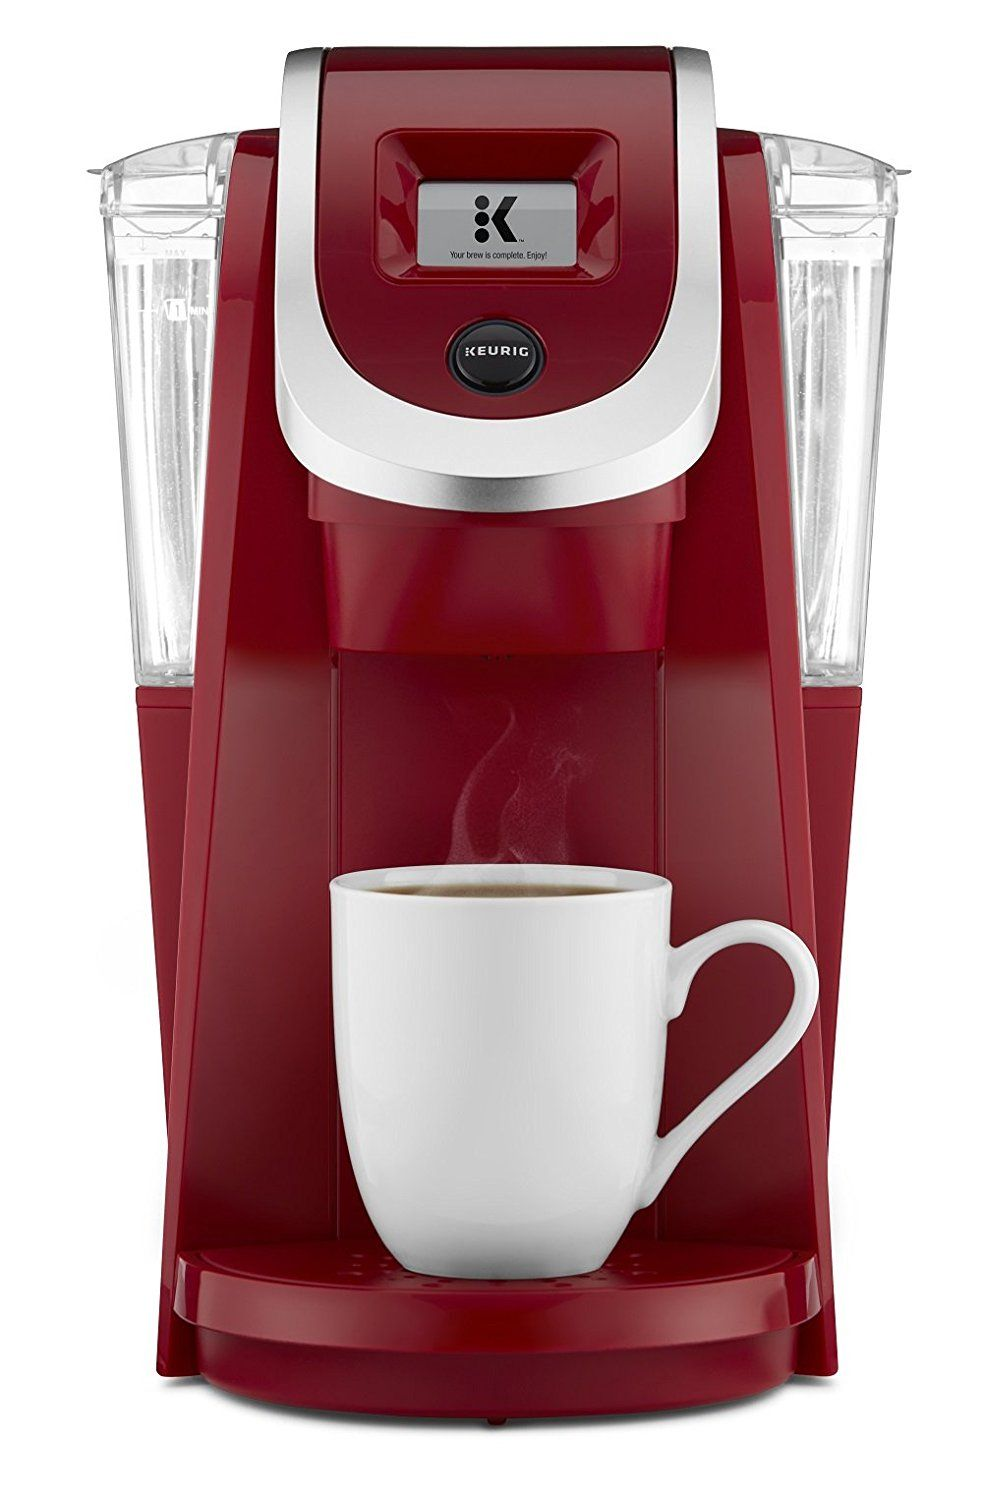 Top 10 Best Single Serve Coffee Makers in 2019 Reviews